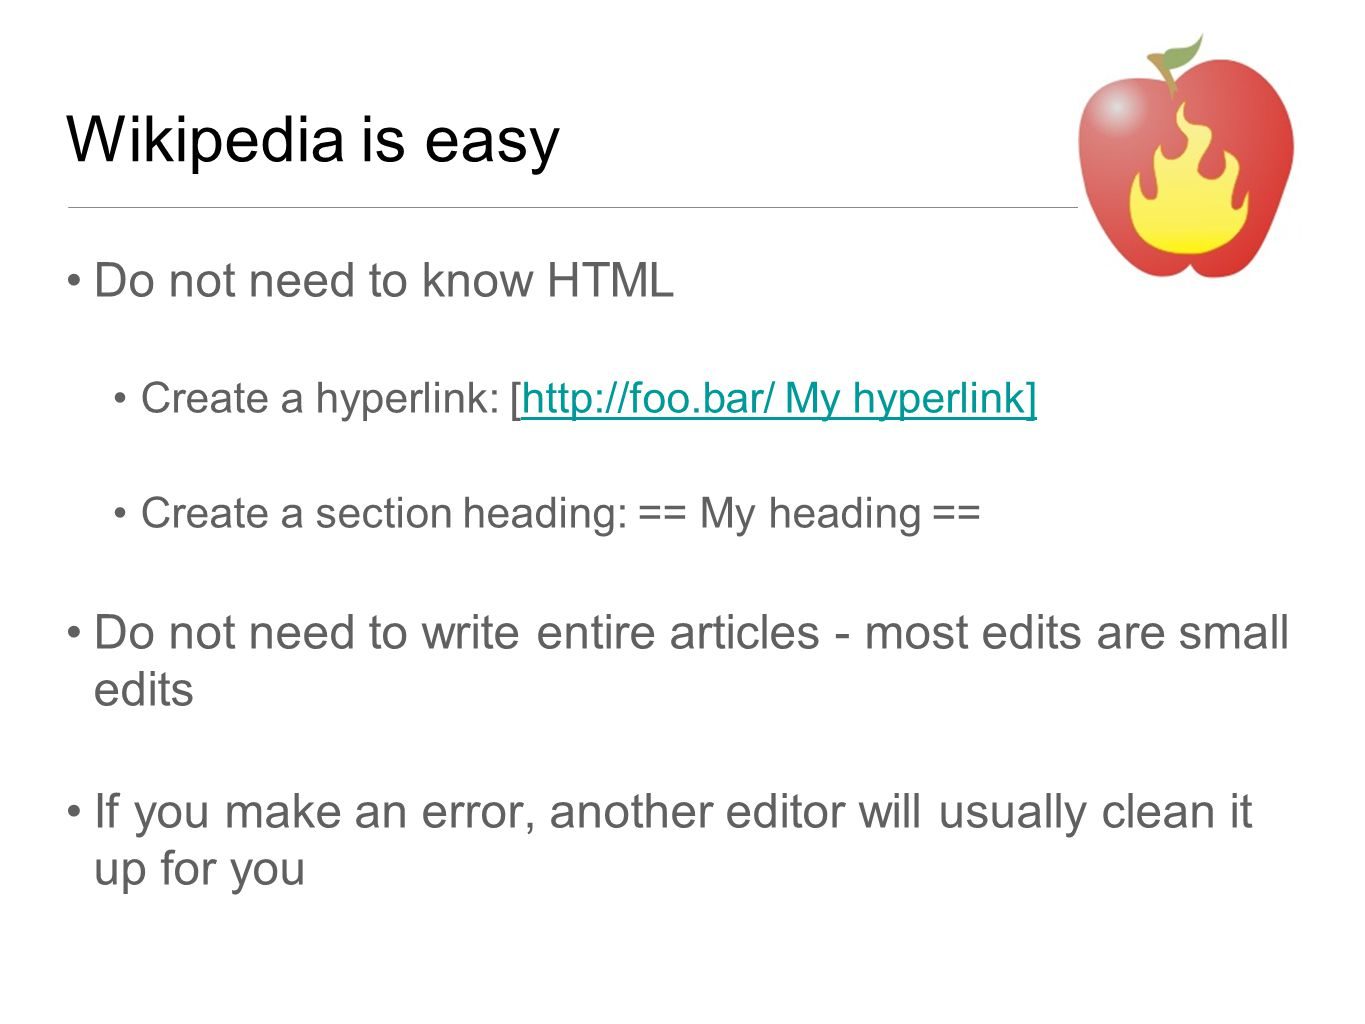 Wikipedia is easy Do not need to know HTML Create a hyperlink: [http://foo.bar/ My hyperlink]http://foo.bar/ My hyperlink] Create a section heading: == My heading == Do not need to write entire articles - most edits are small edits If you make an error, another editor will usually clean it up for you